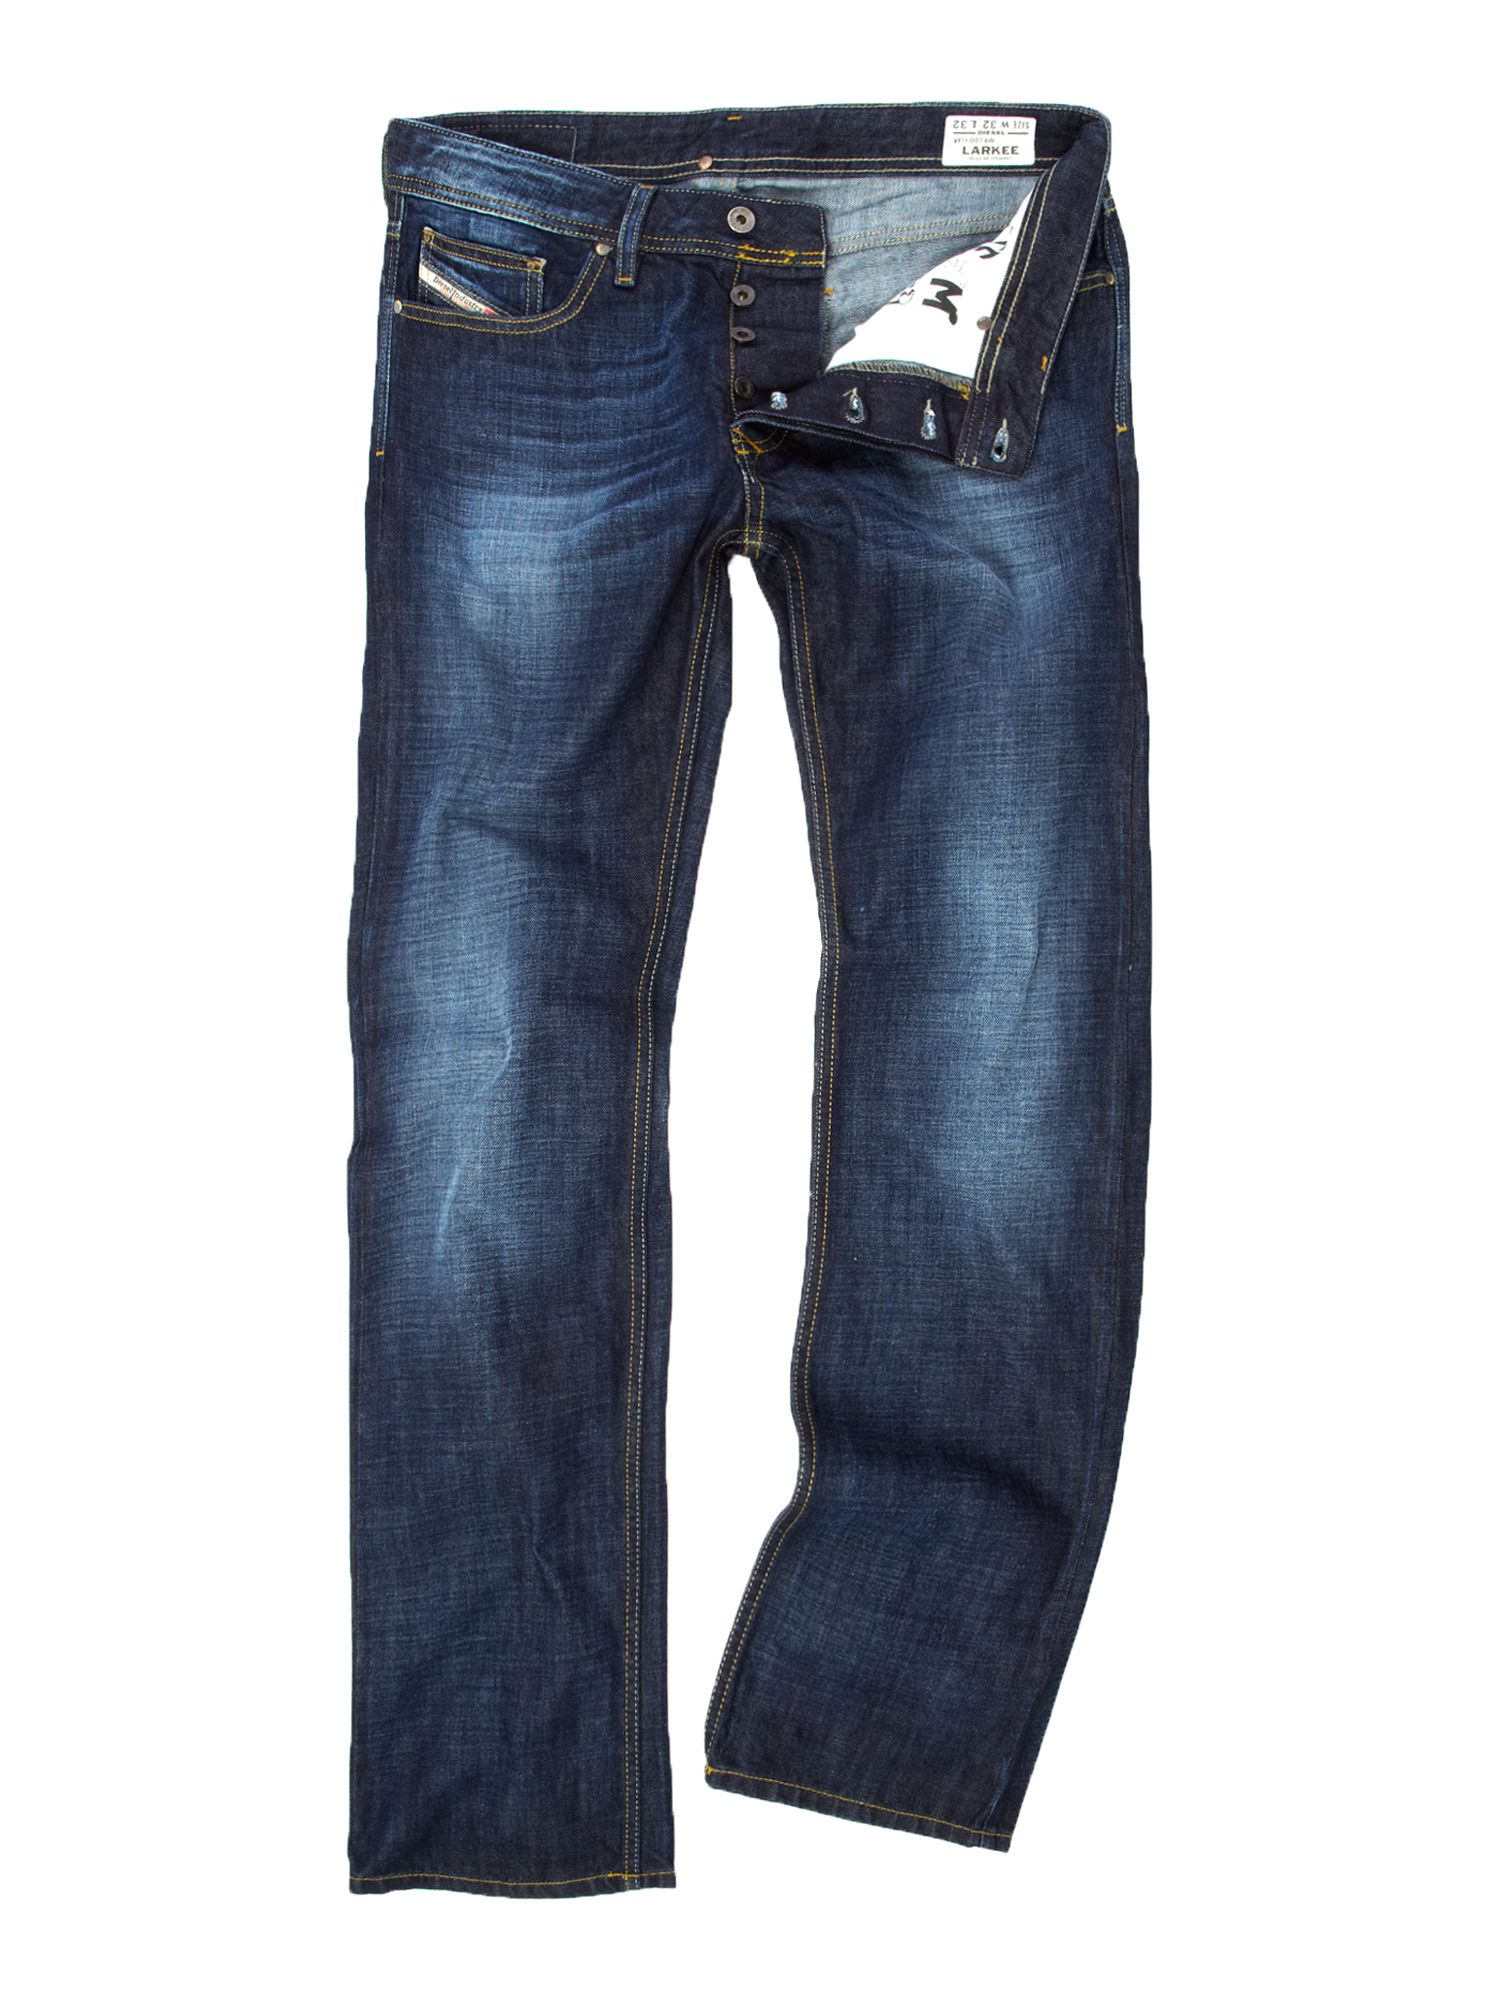 Larkee 74W regular straight fit jeans